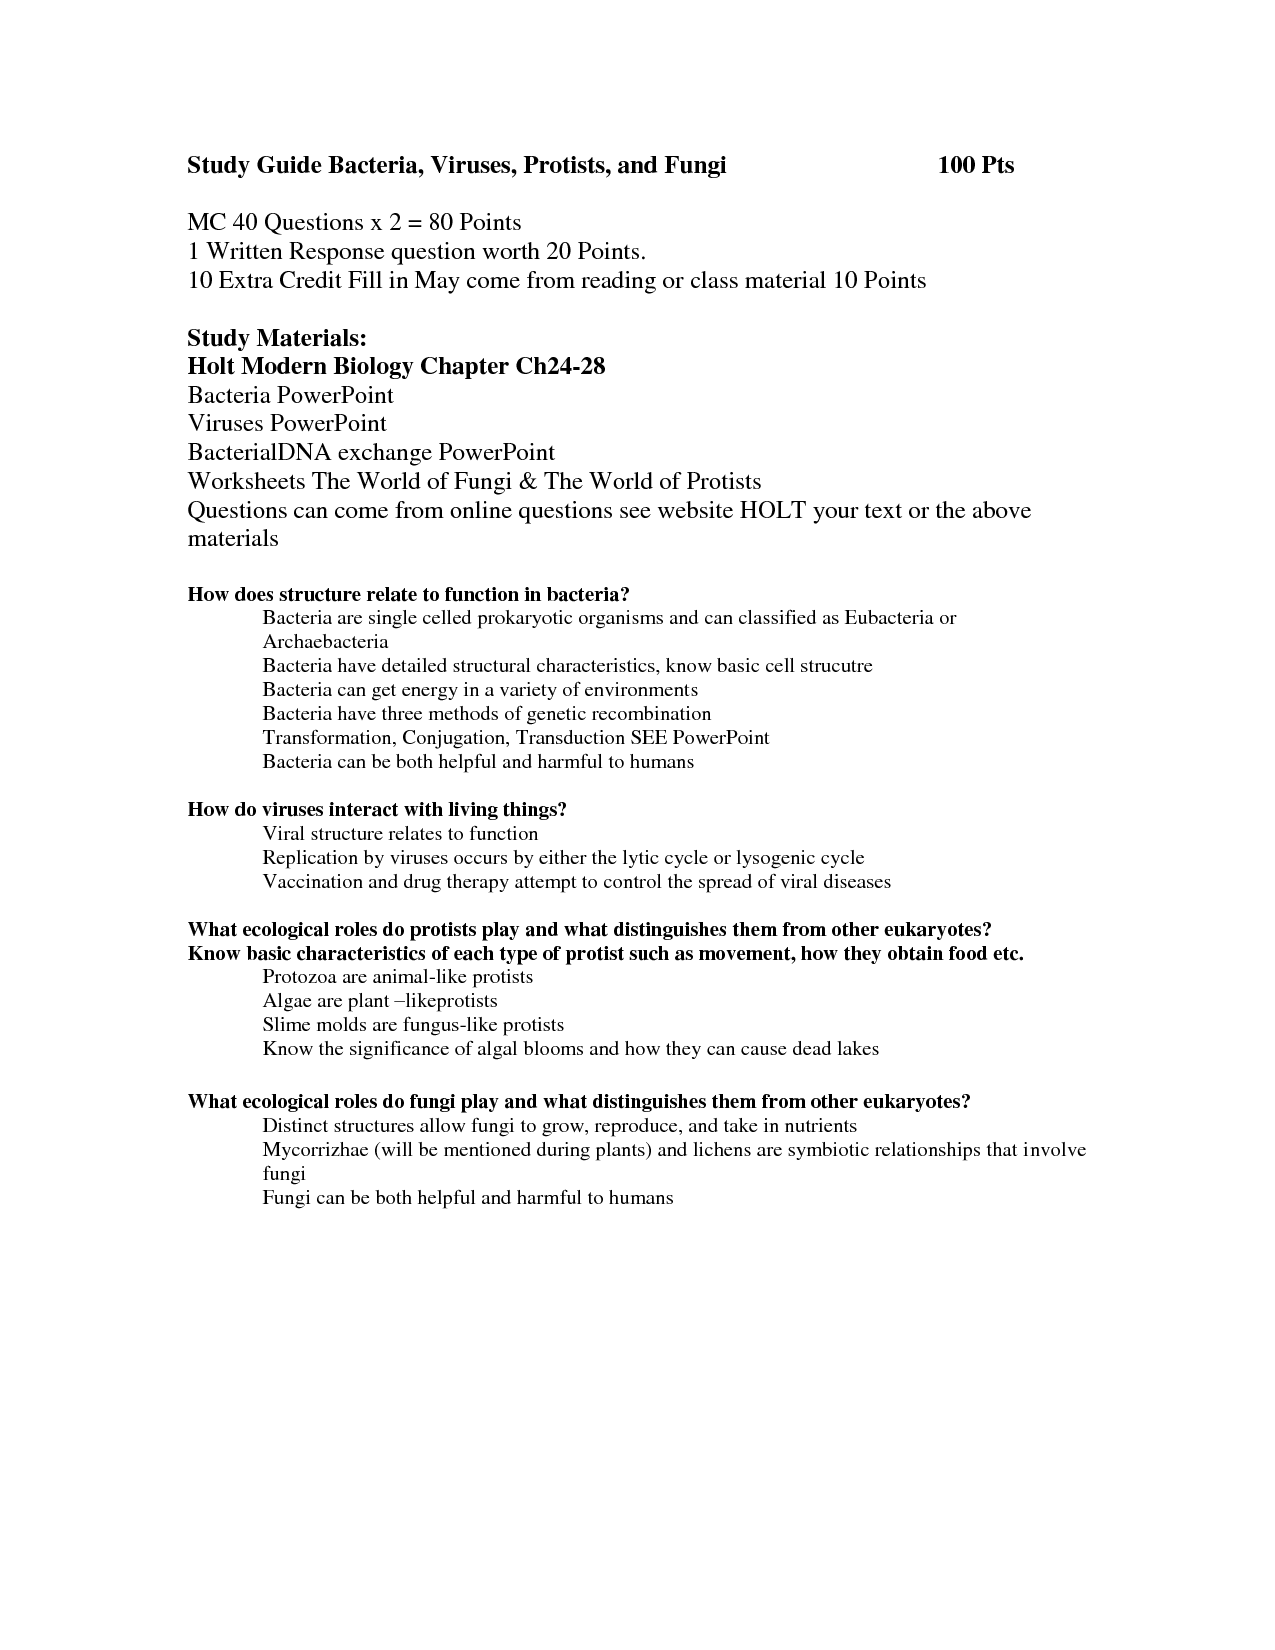 Worksheets Bacteria And Viruses Worksheet Worksheets